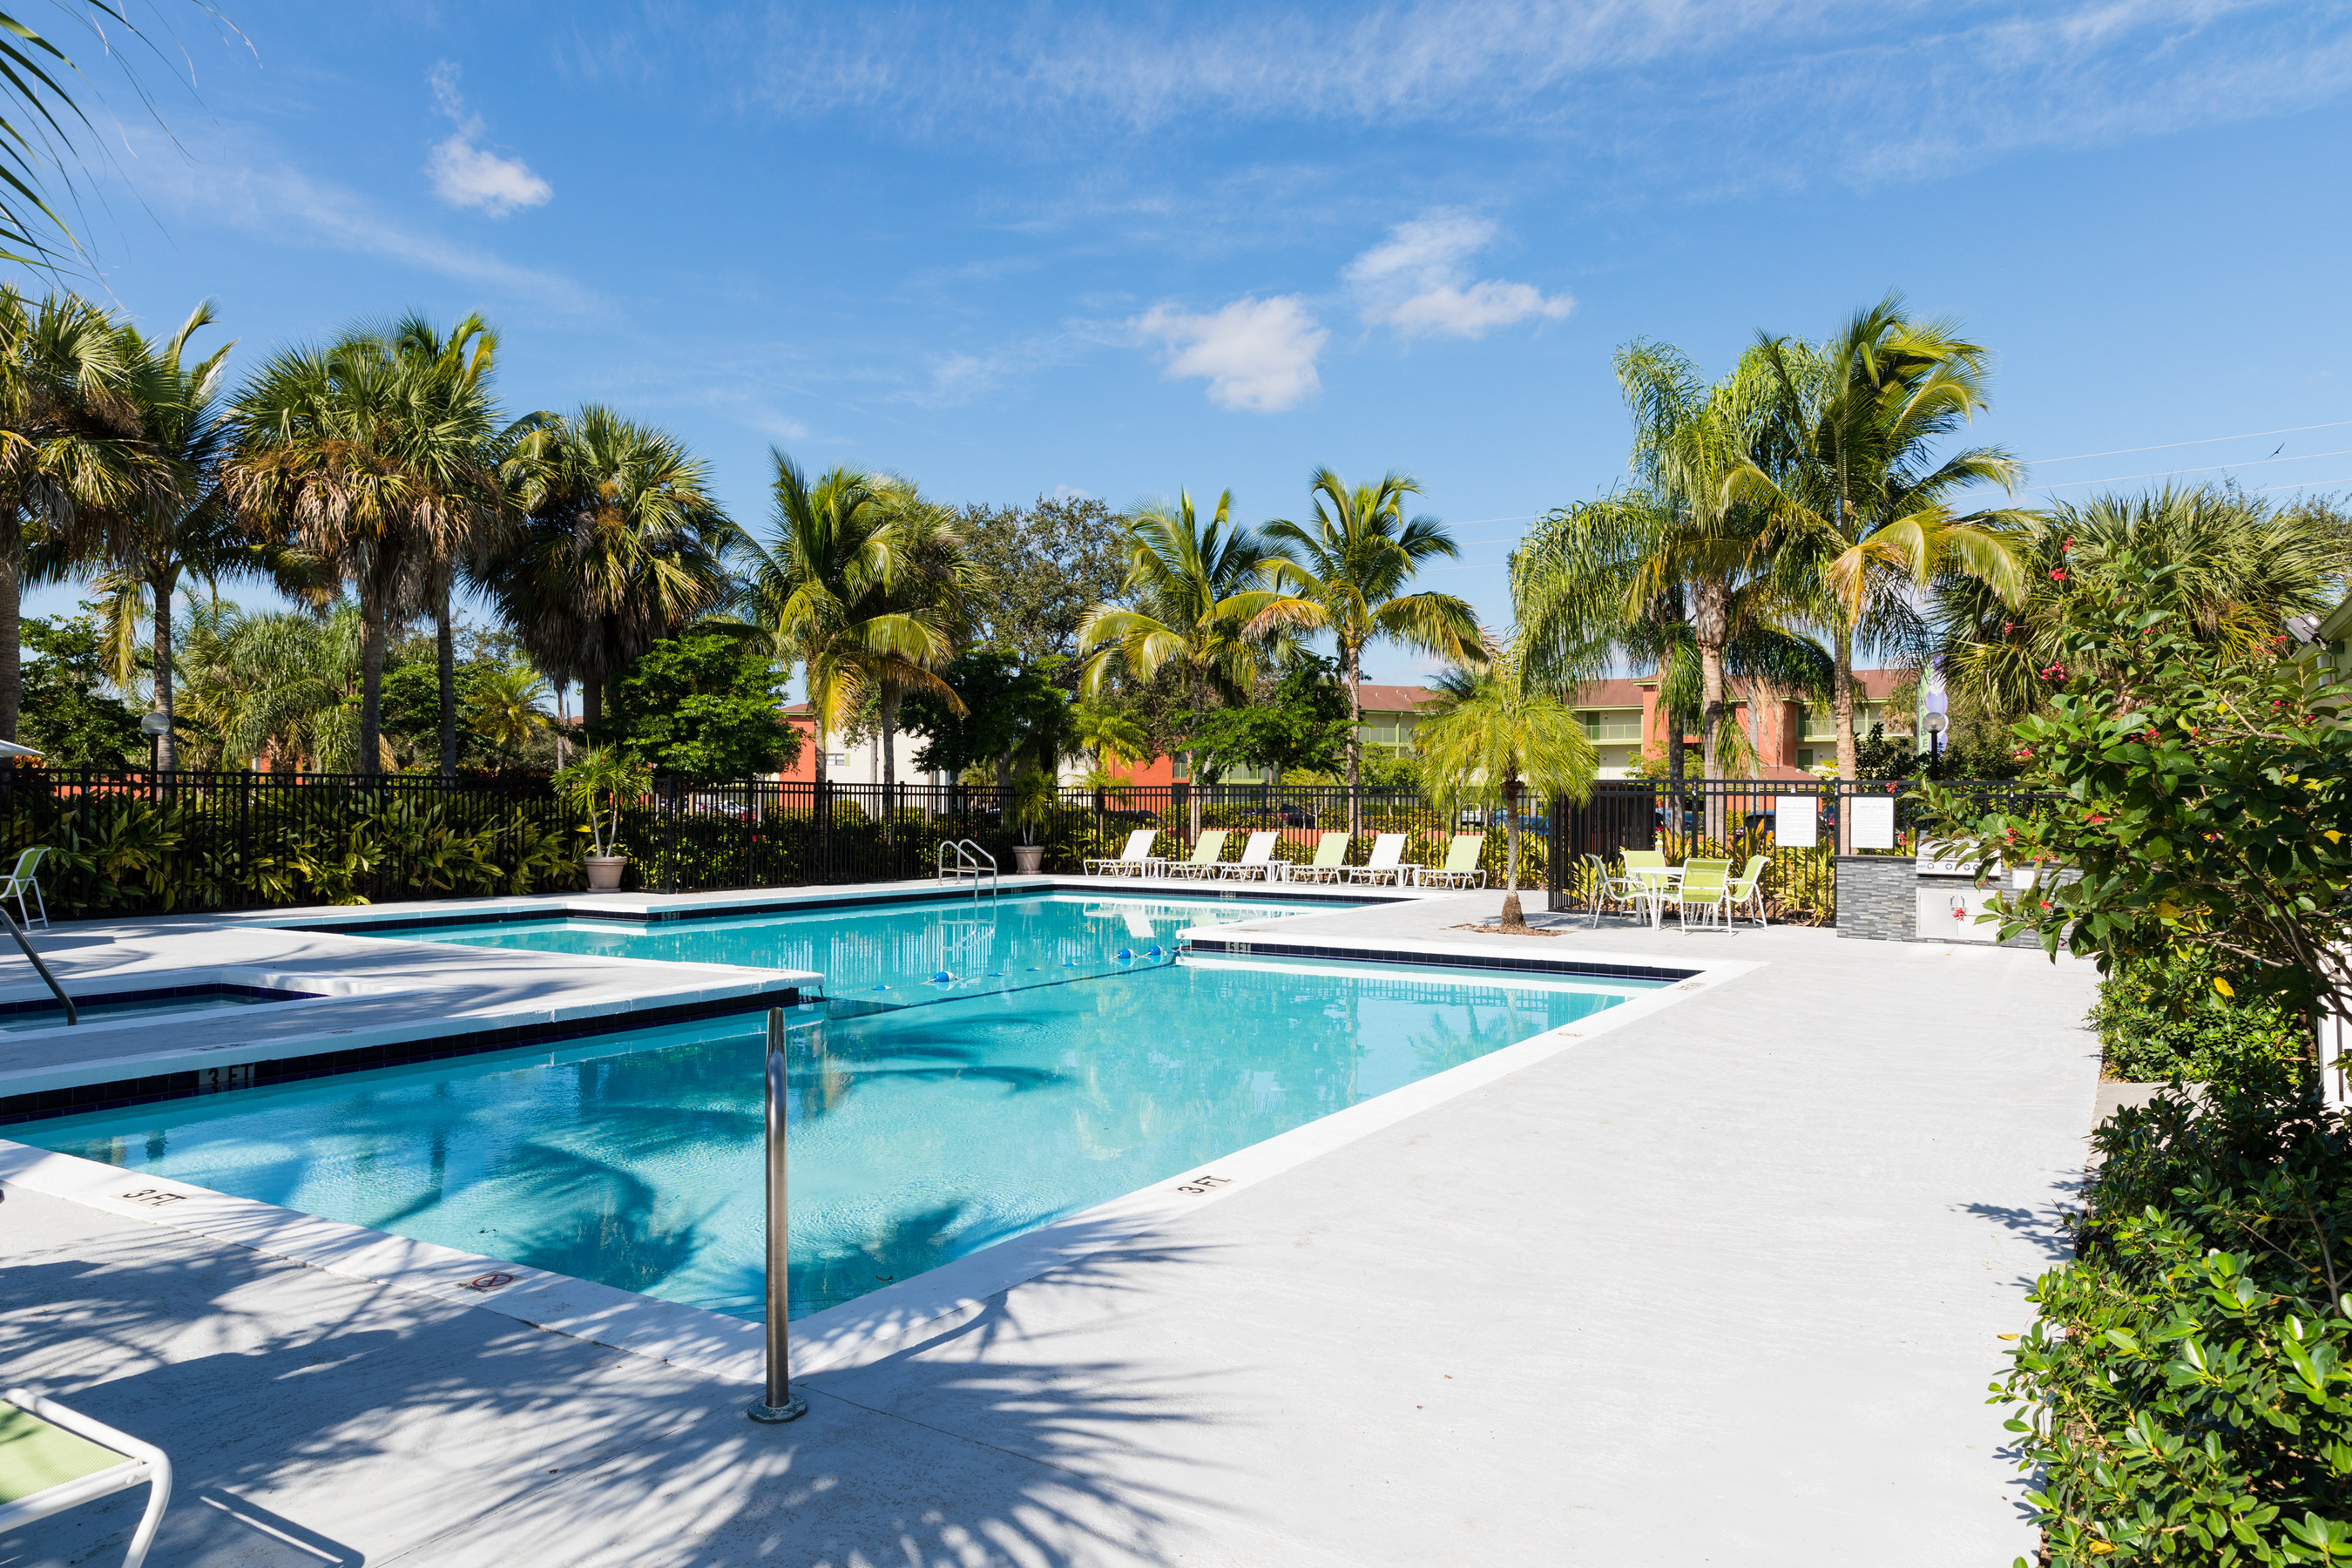 ResProp Adds 291-Unit Spectra at Tamarac to Its Managed Multifamily Housing Portfolio